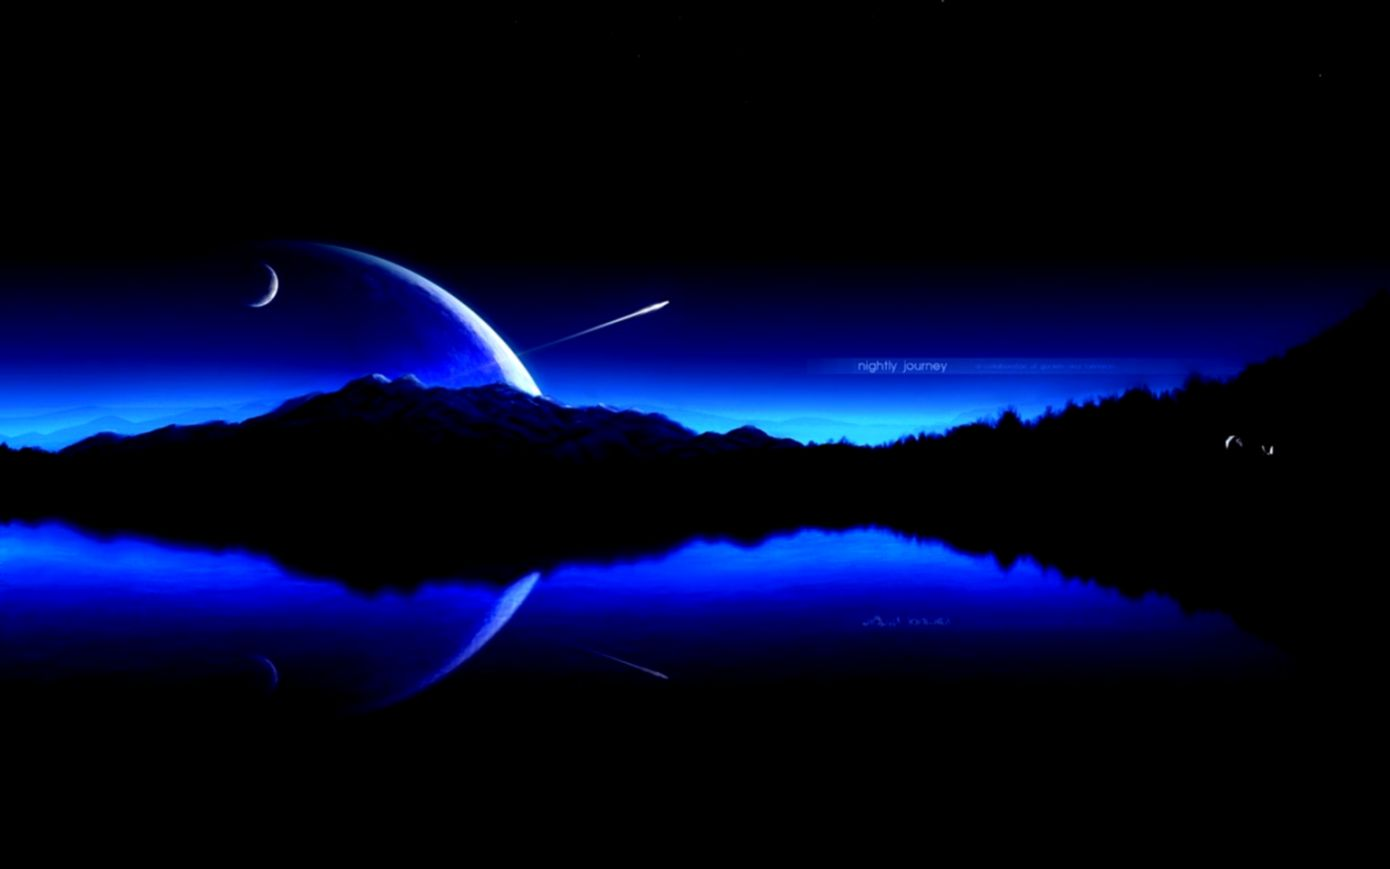 Space Digital Universe Blue Planets Hd Wallpaper  Wallpaper Gallery